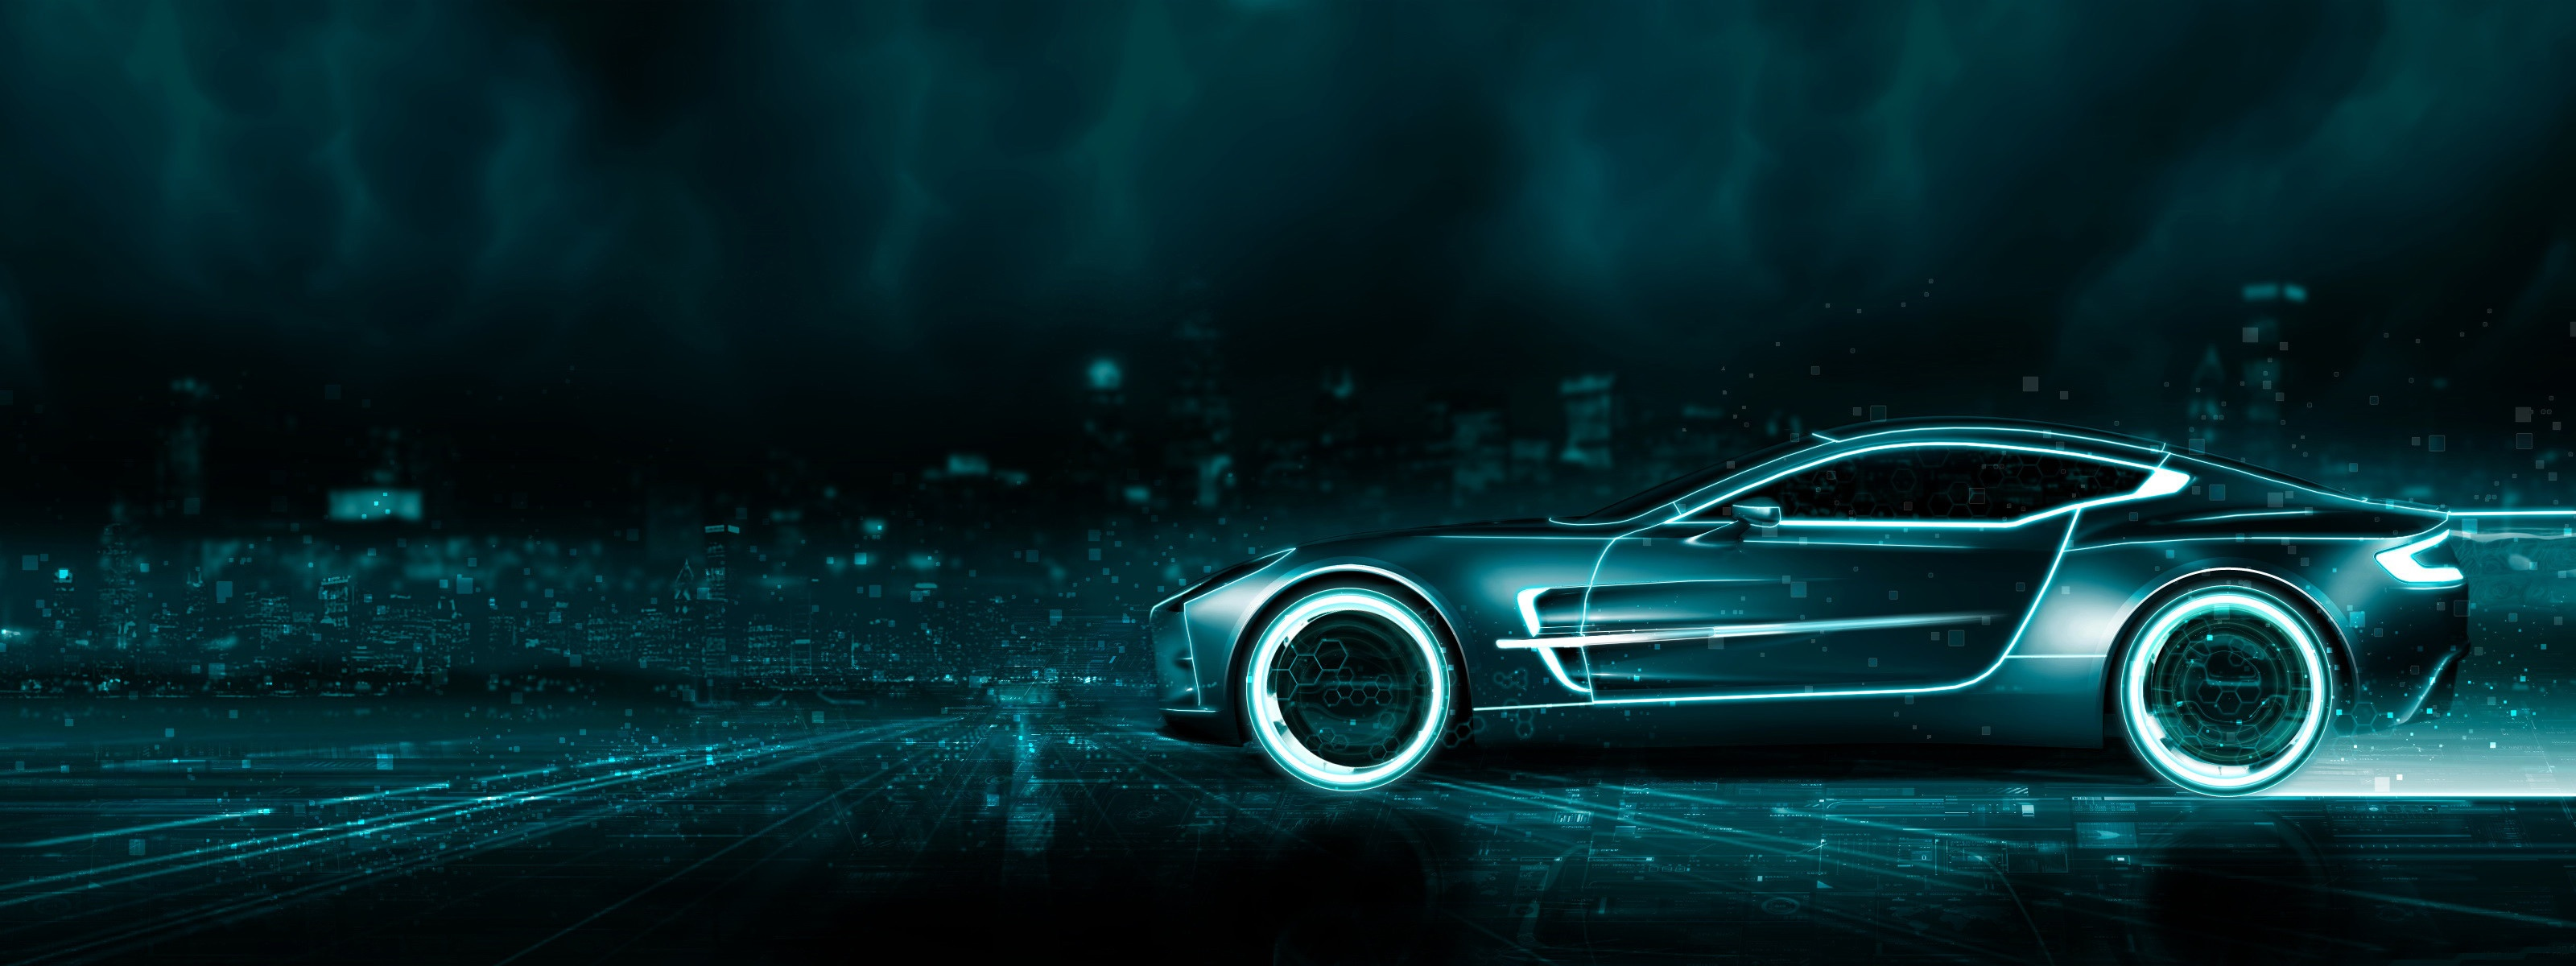 Tron Aston Martin Wallpapers HD Wallpapers 3200x1200